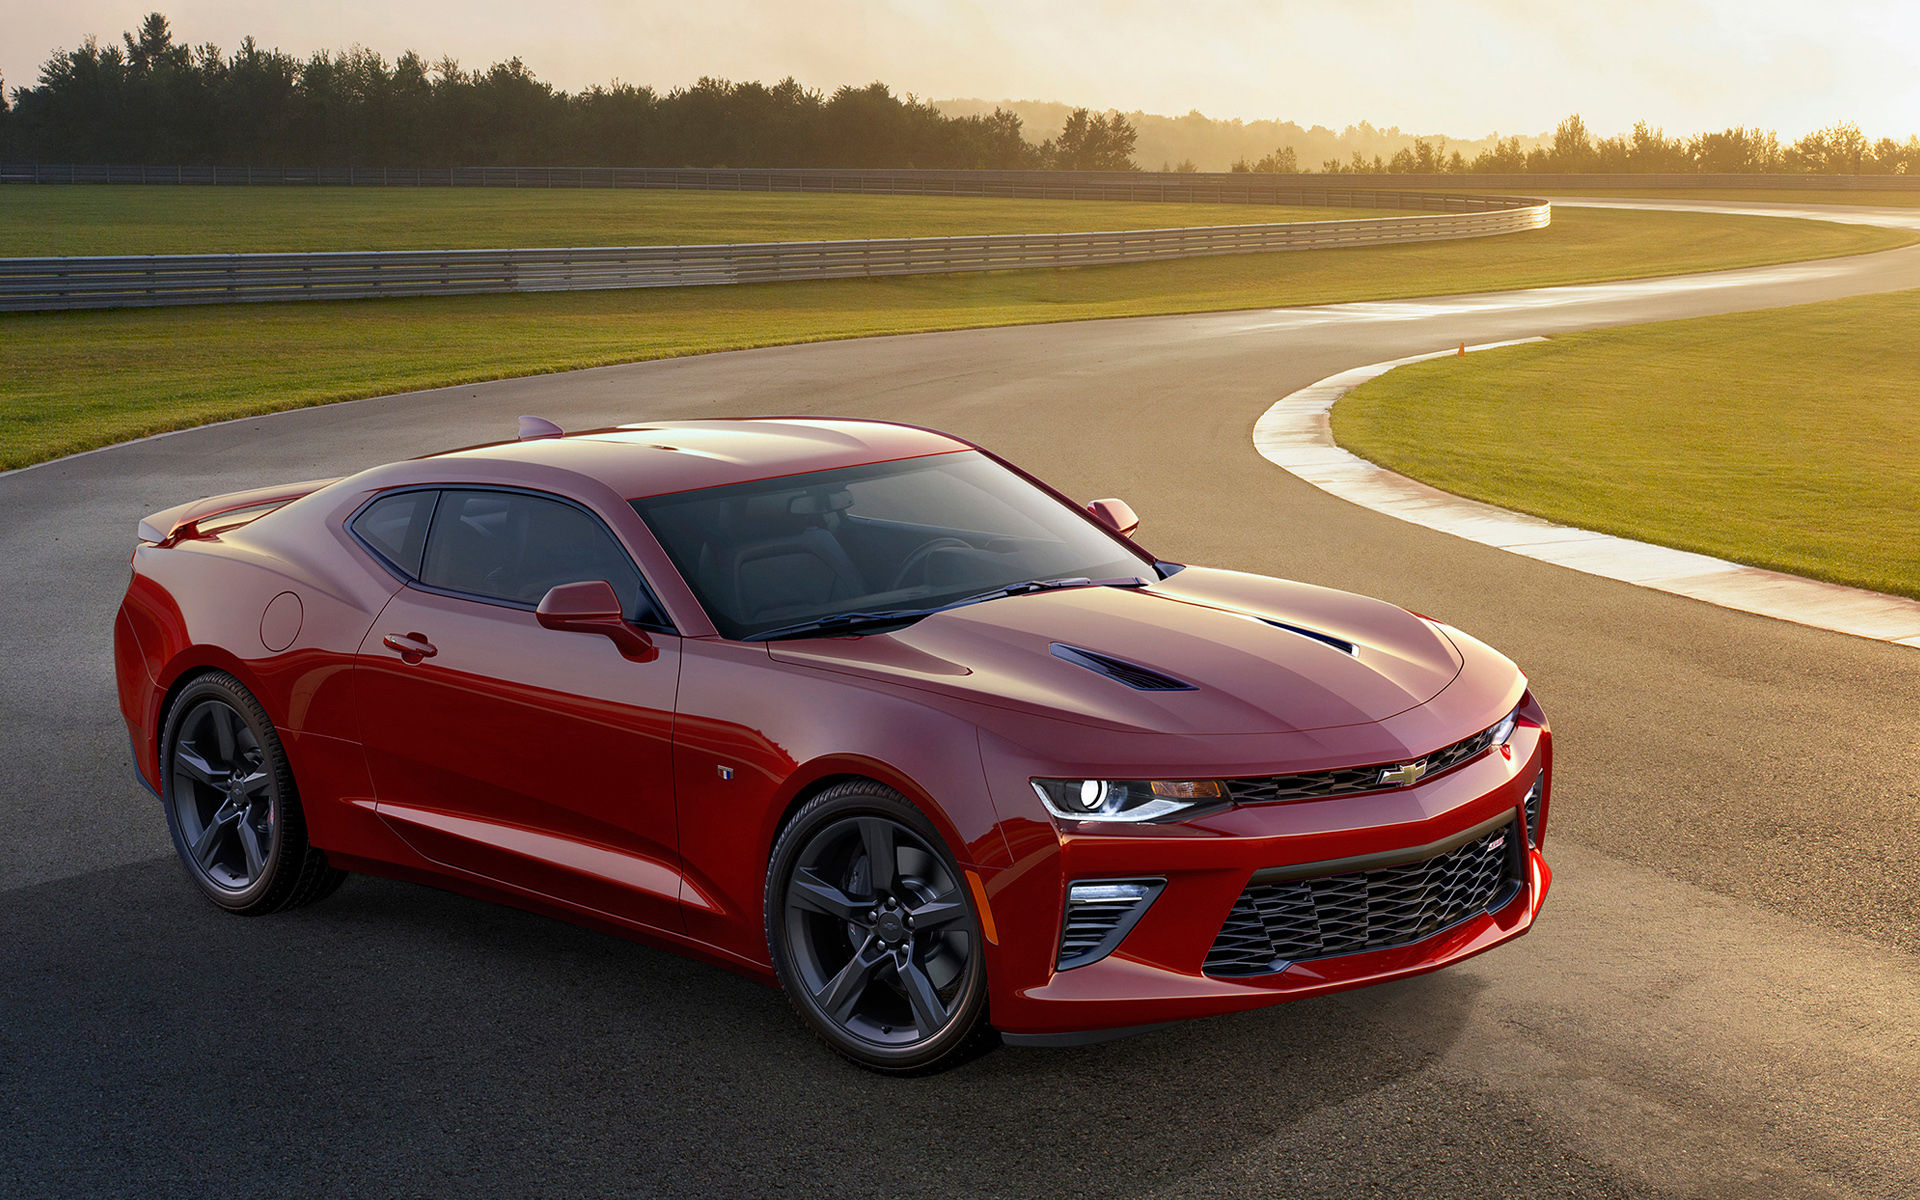 Wallpapers Of Camaros wallpaper hd | Wallpapers 4k | Pinterest ...